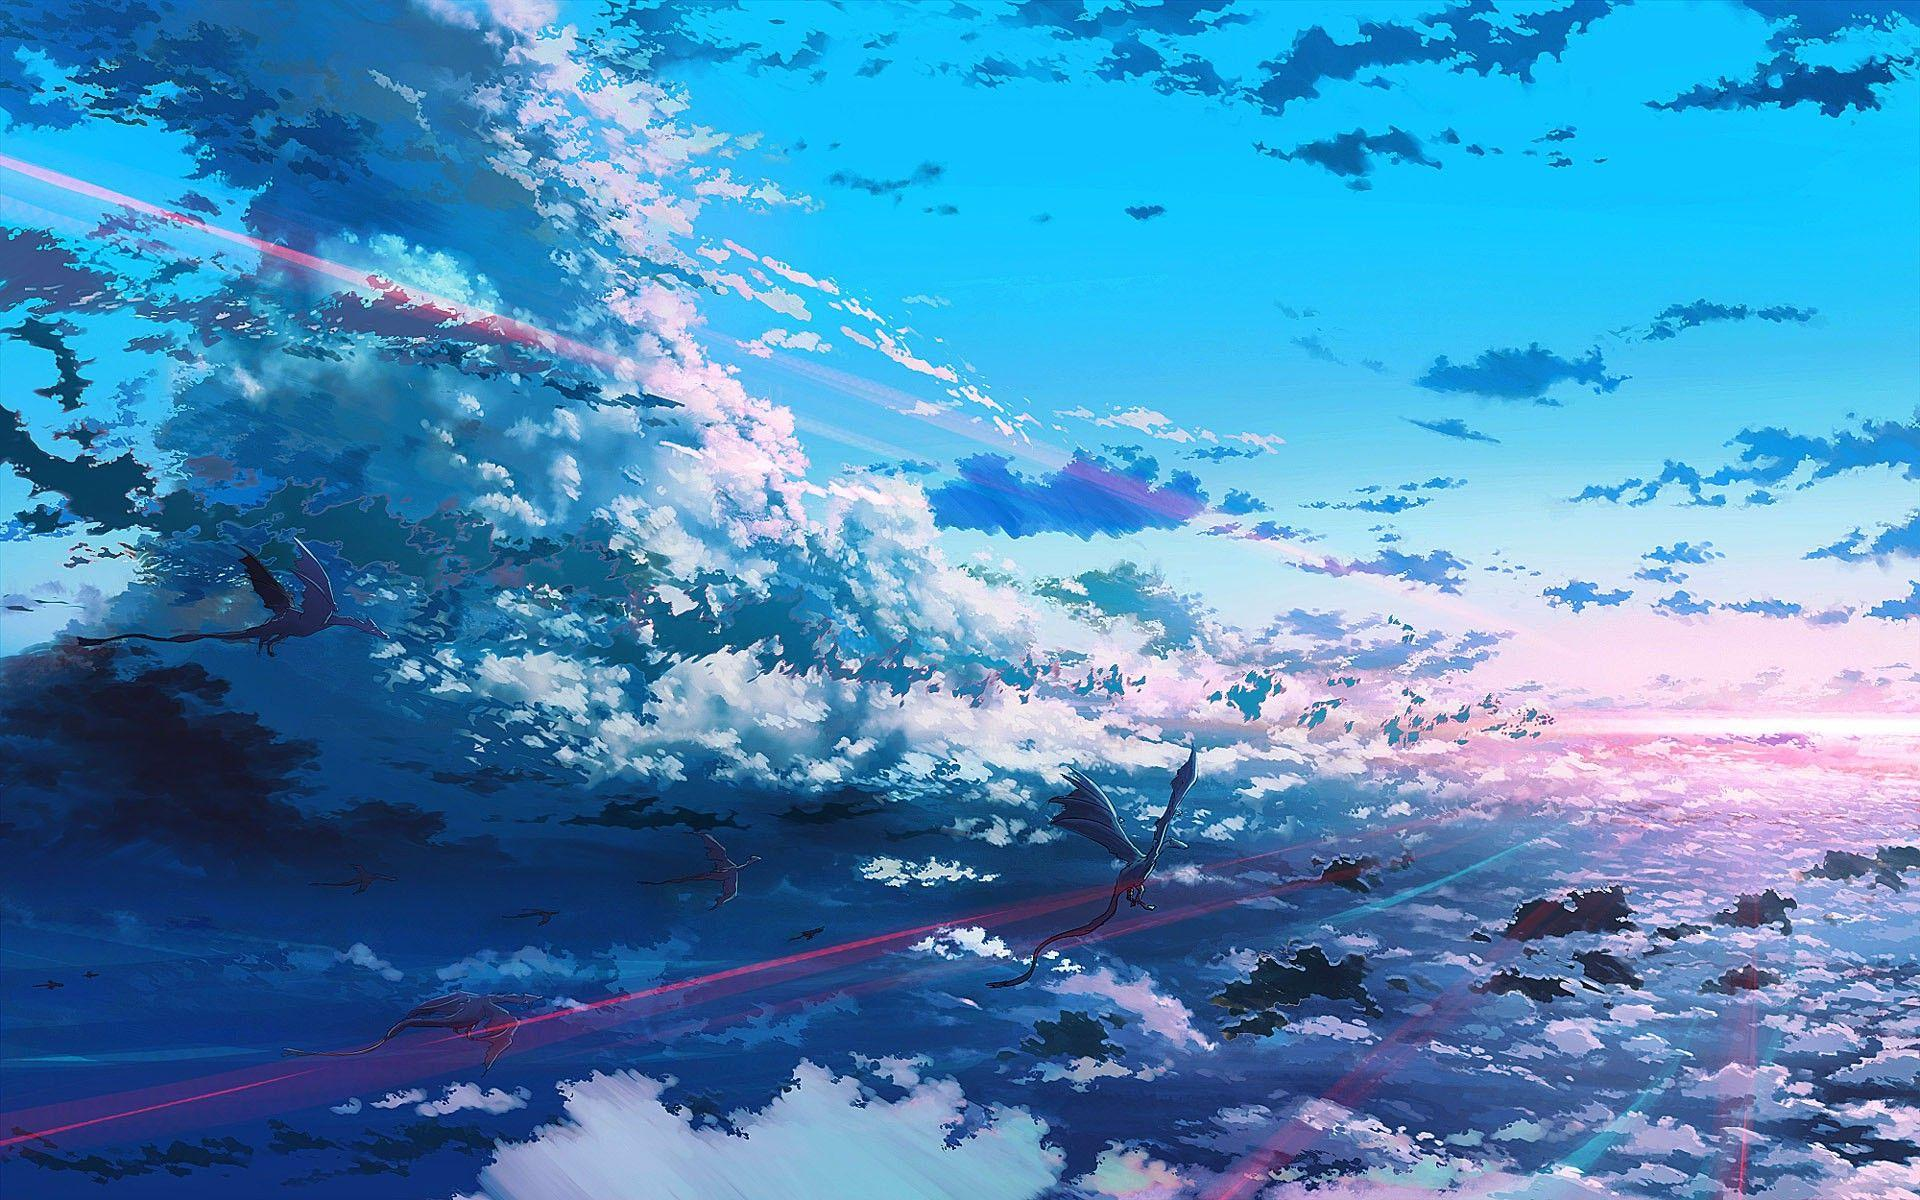 Ultra Hd Desktop Anime Sky Wallpapers Wallpaper Cave